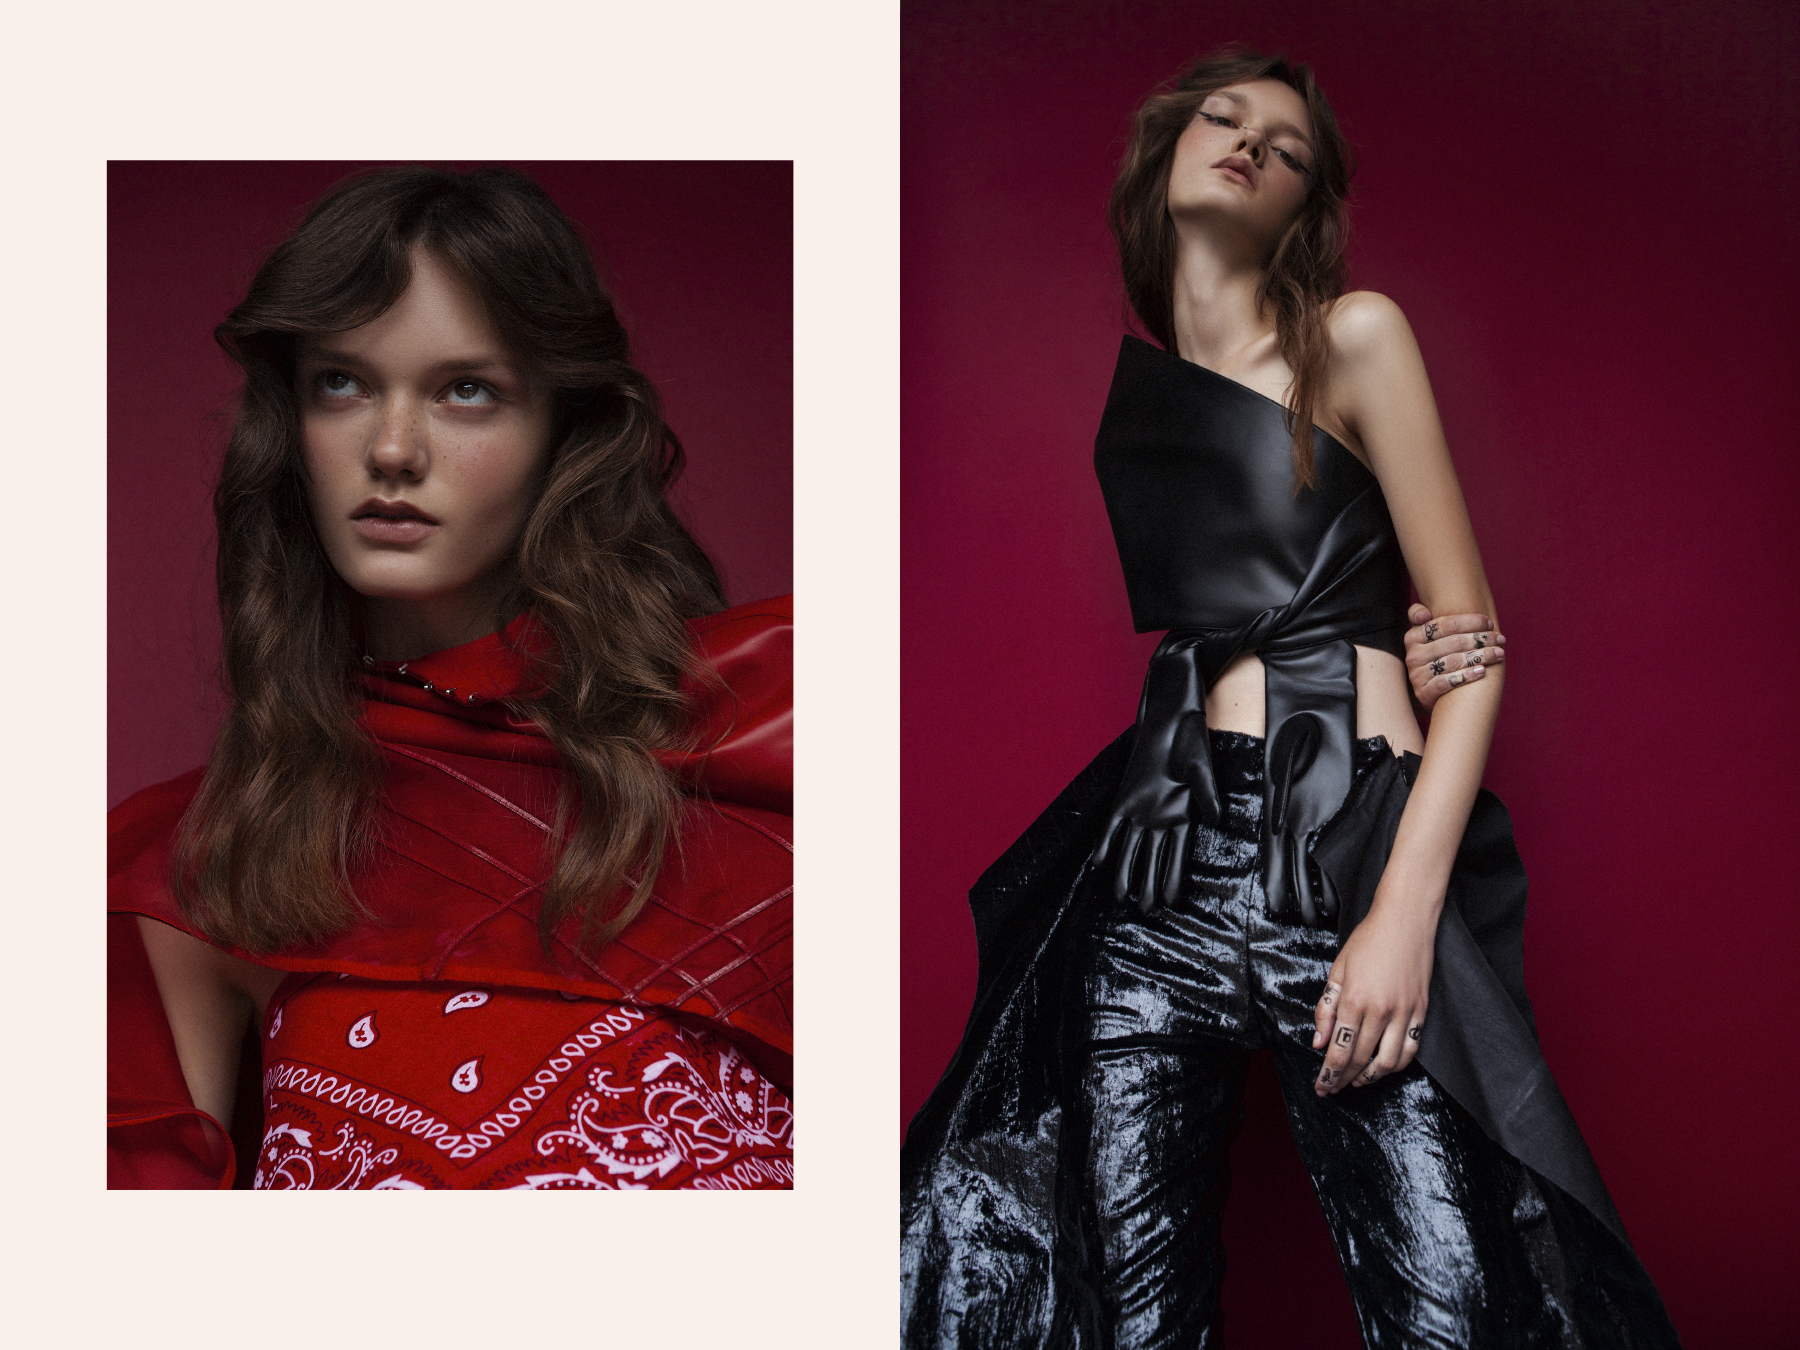 top by   CATARINA NIEDERMEIER   bandana  STYLIST'S OWN . top and gloves by   FENGYI TAN   trousers by   PAULA KNORR